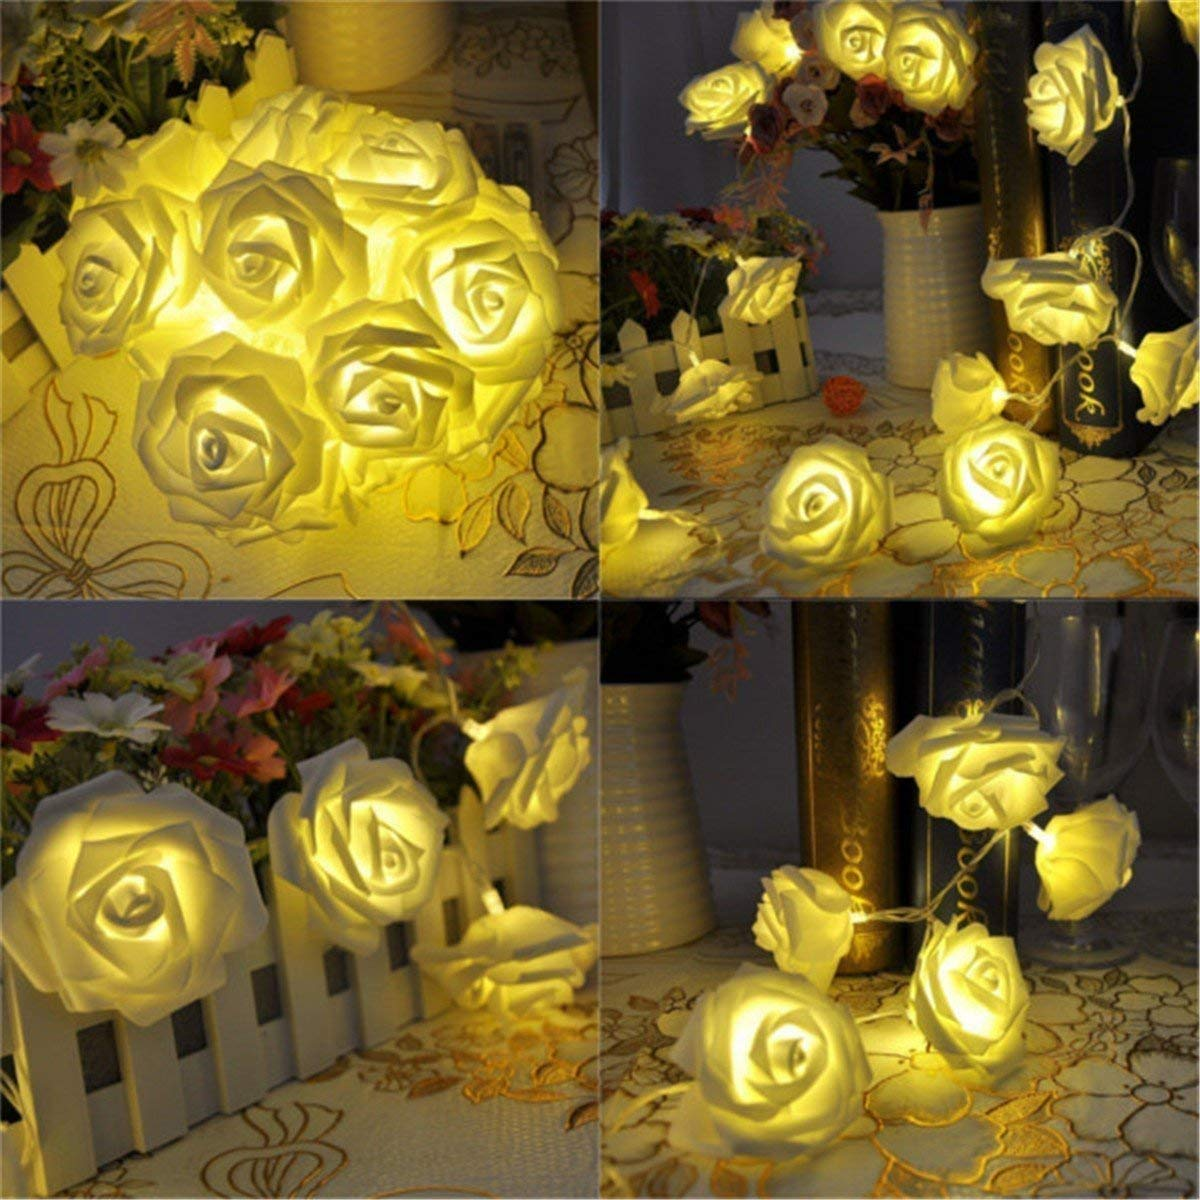 Citra 28 Led String Strip Light Rose Flower Shape Diwali Light for Decoration 28Led- Warm White